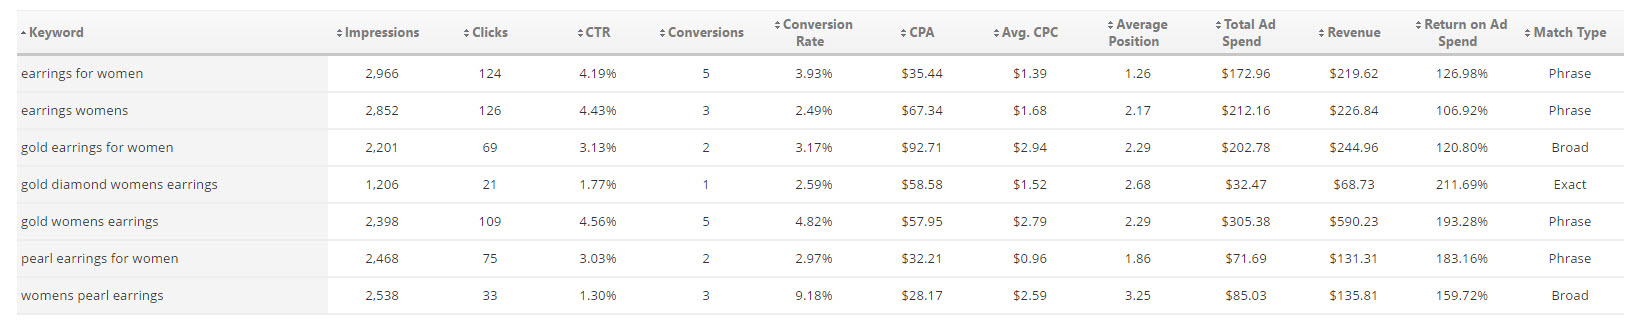 Bing Ads Keywords Metrics Table